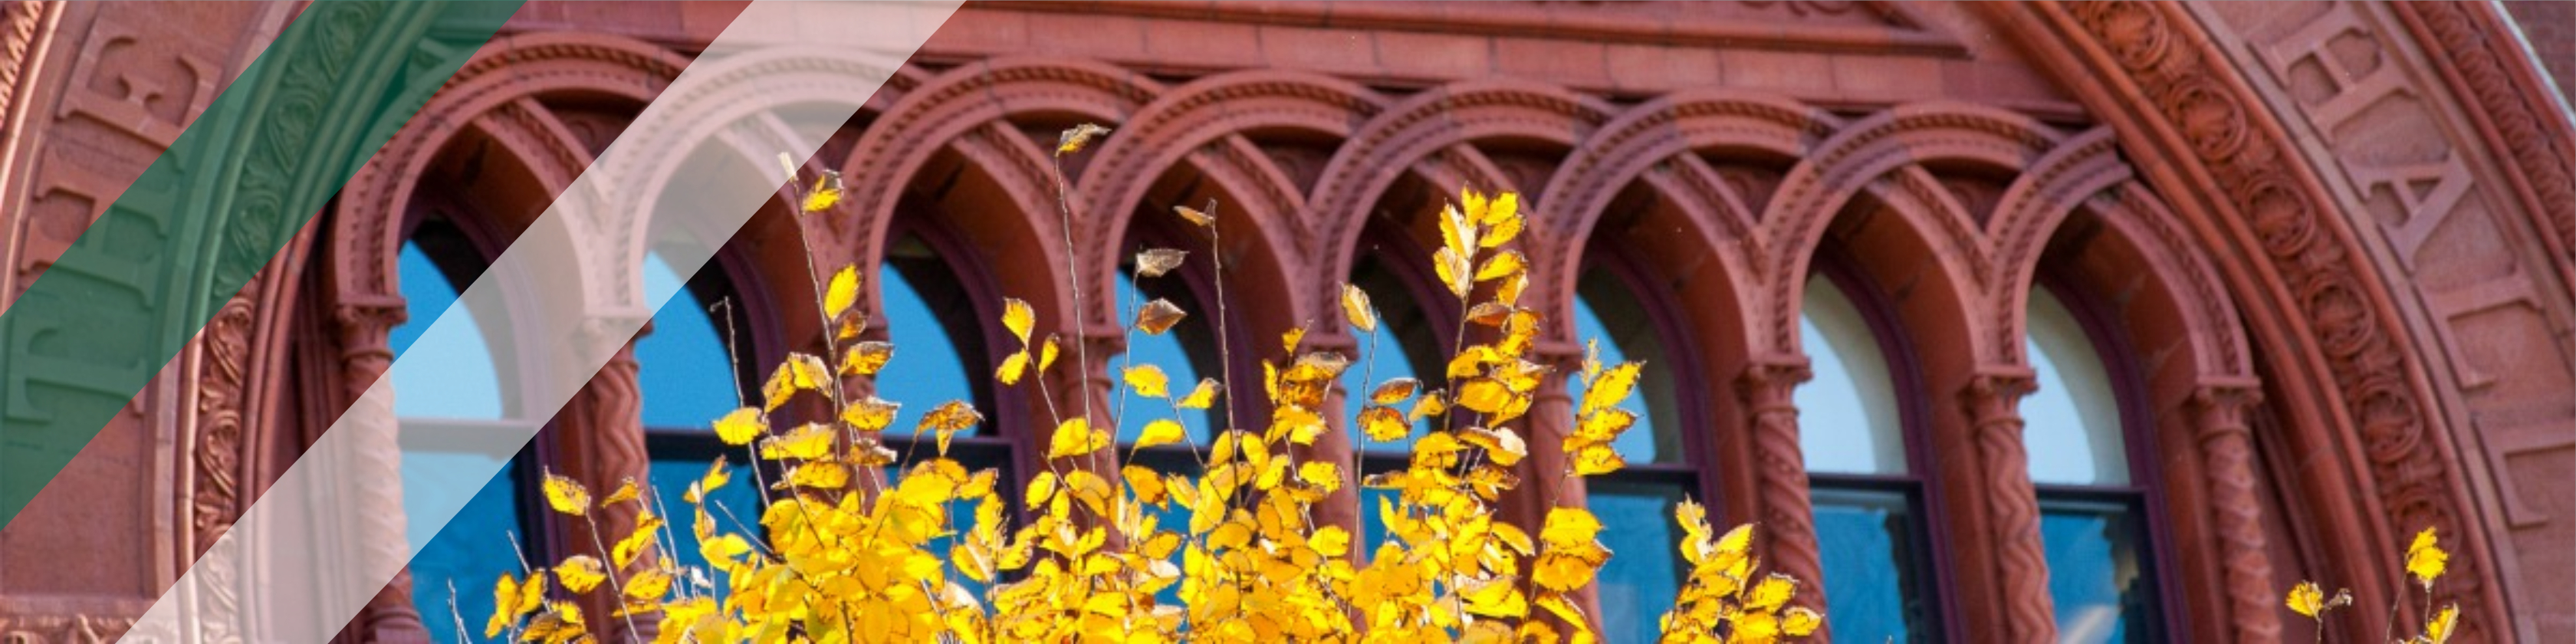 Red brick arch way with yellow leaves in the foreground.